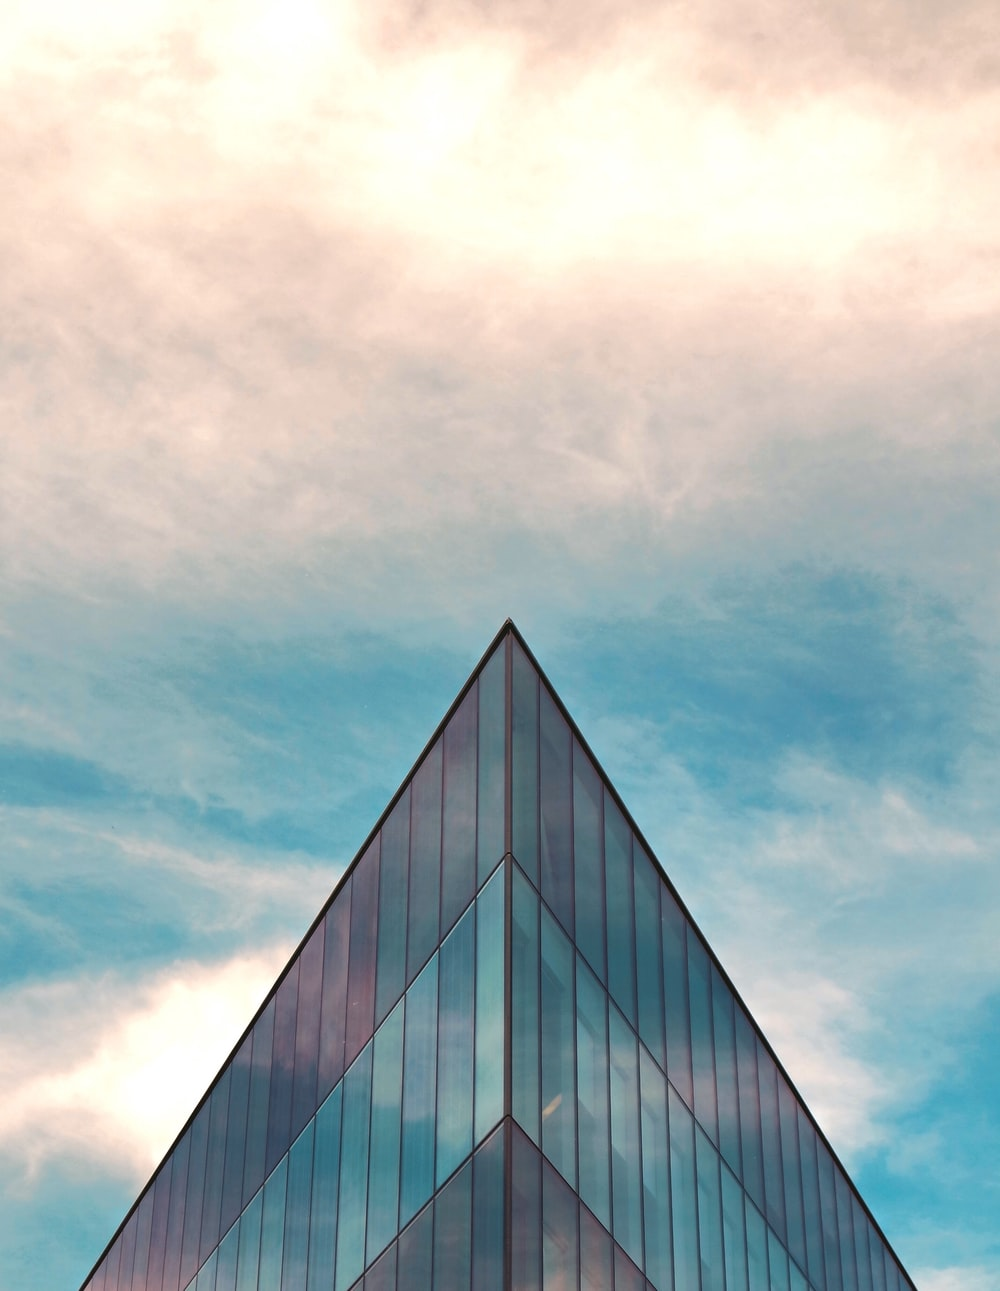 blue and gray glass walled building under white and blue skies